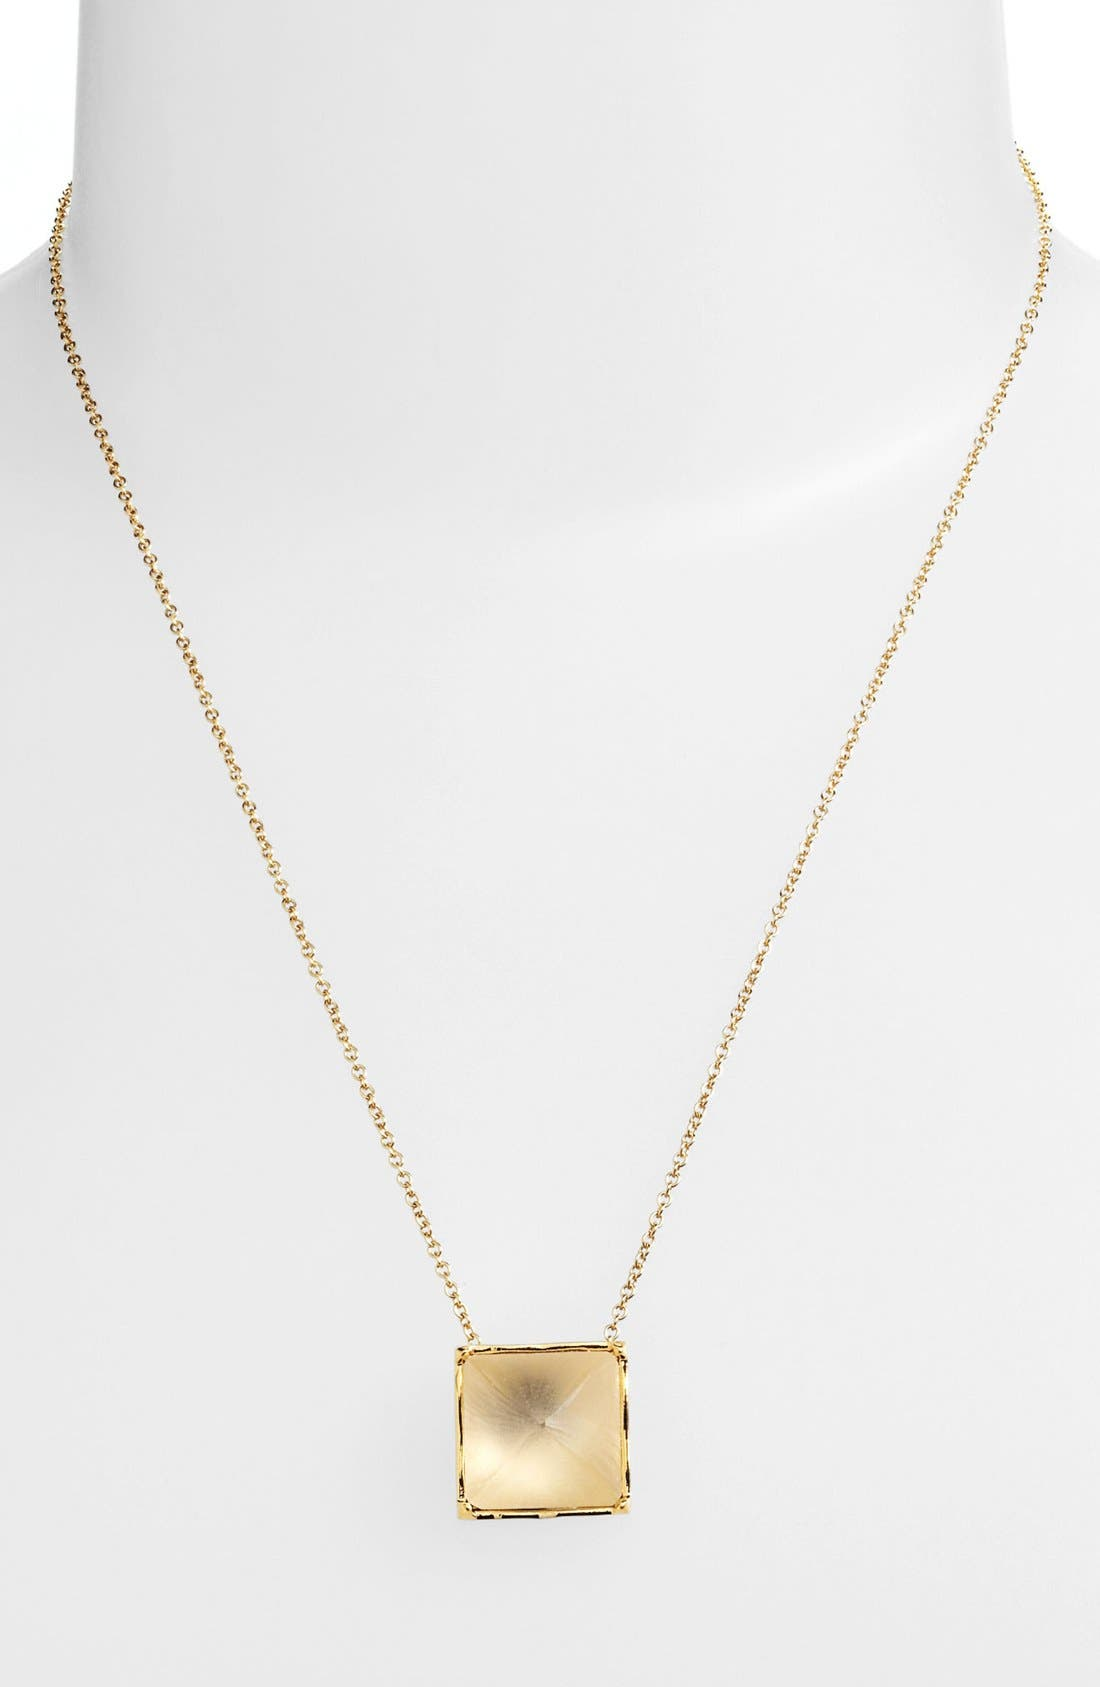 Main Image - Alexis Bittar 'Lucite®' Pyramid Pendant Necklace